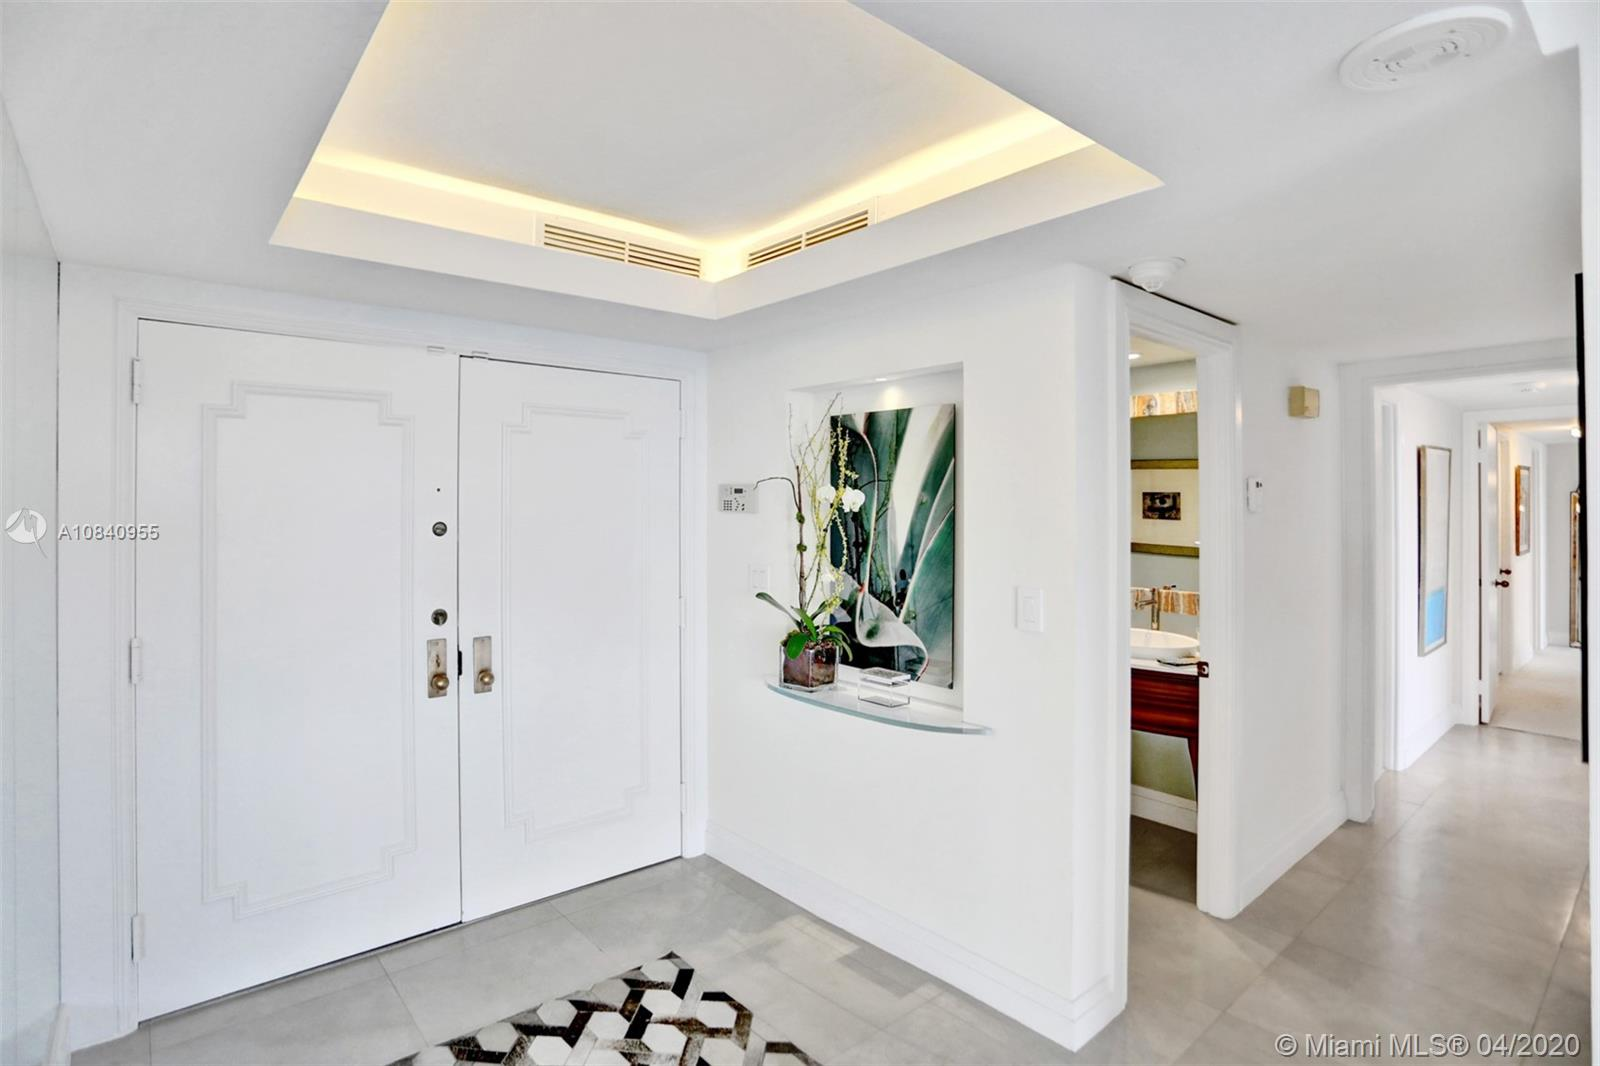 3 Grove Isle Dr # C410, Miami, Florida 33133, 3 Bedrooms Bedrooms, ,3 BathroomsBathrooms,Residential,For Sale,3 Grove Isle Dr # C410,A10840955